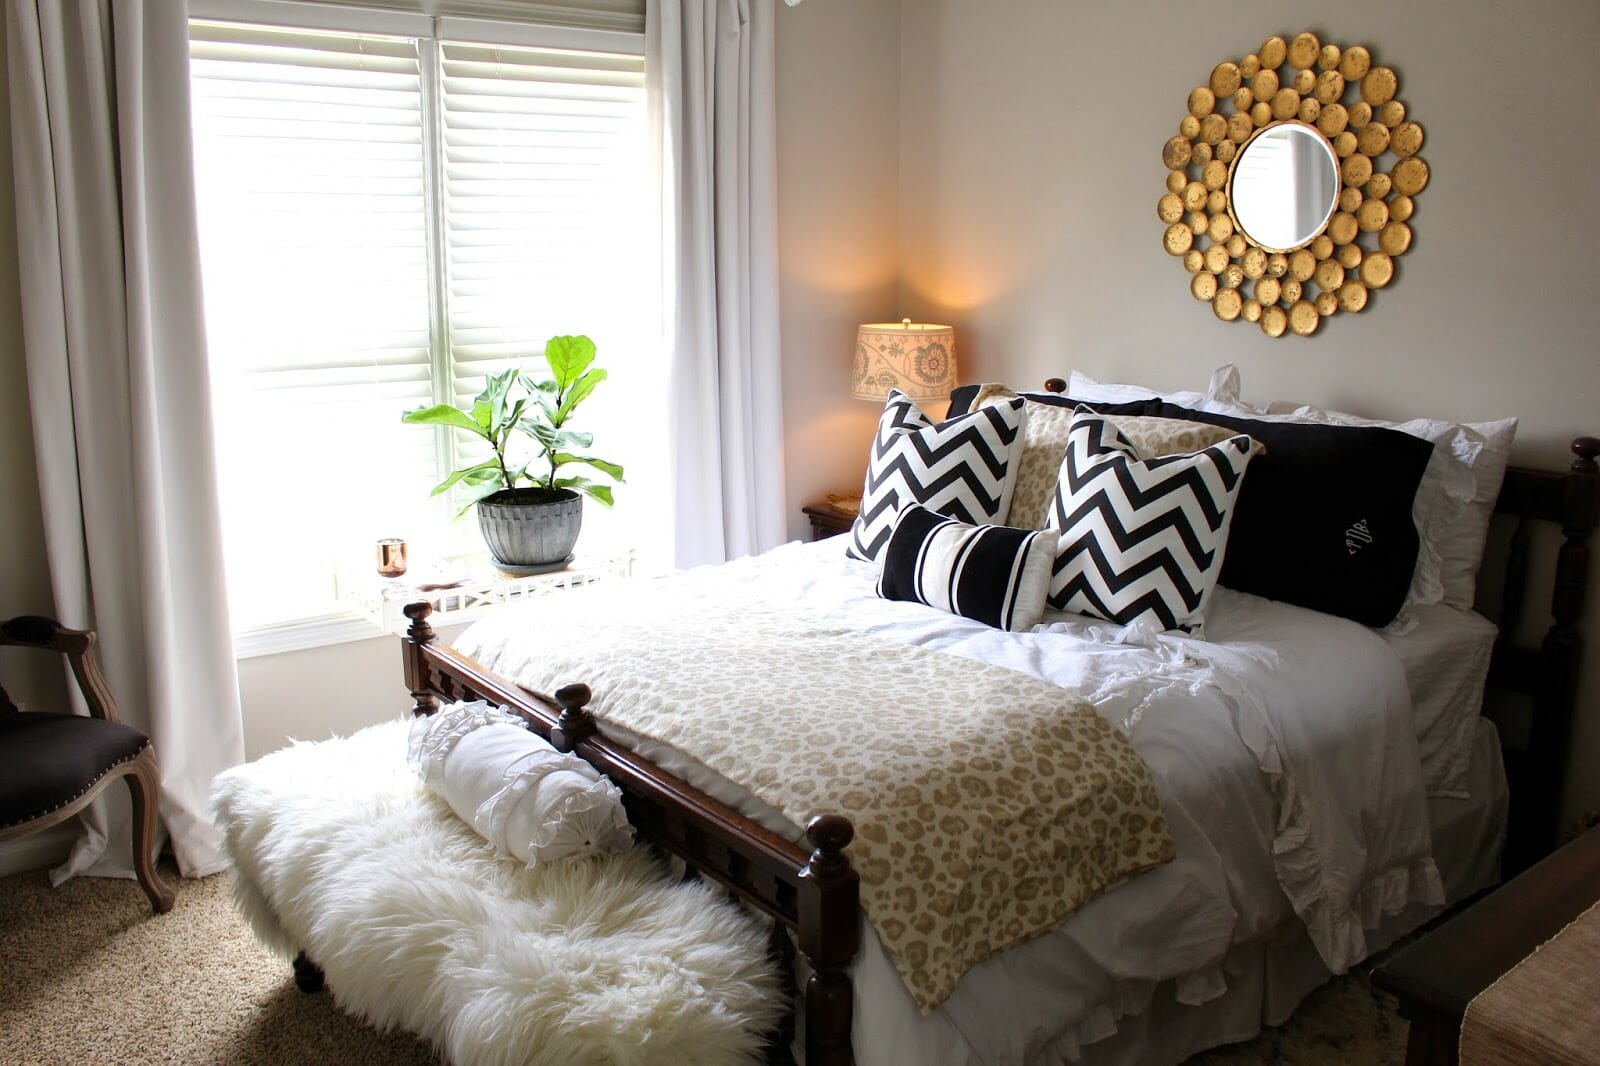 Top 5 decor tips for creating the perfect guest room for Bedroom decorating tips small space